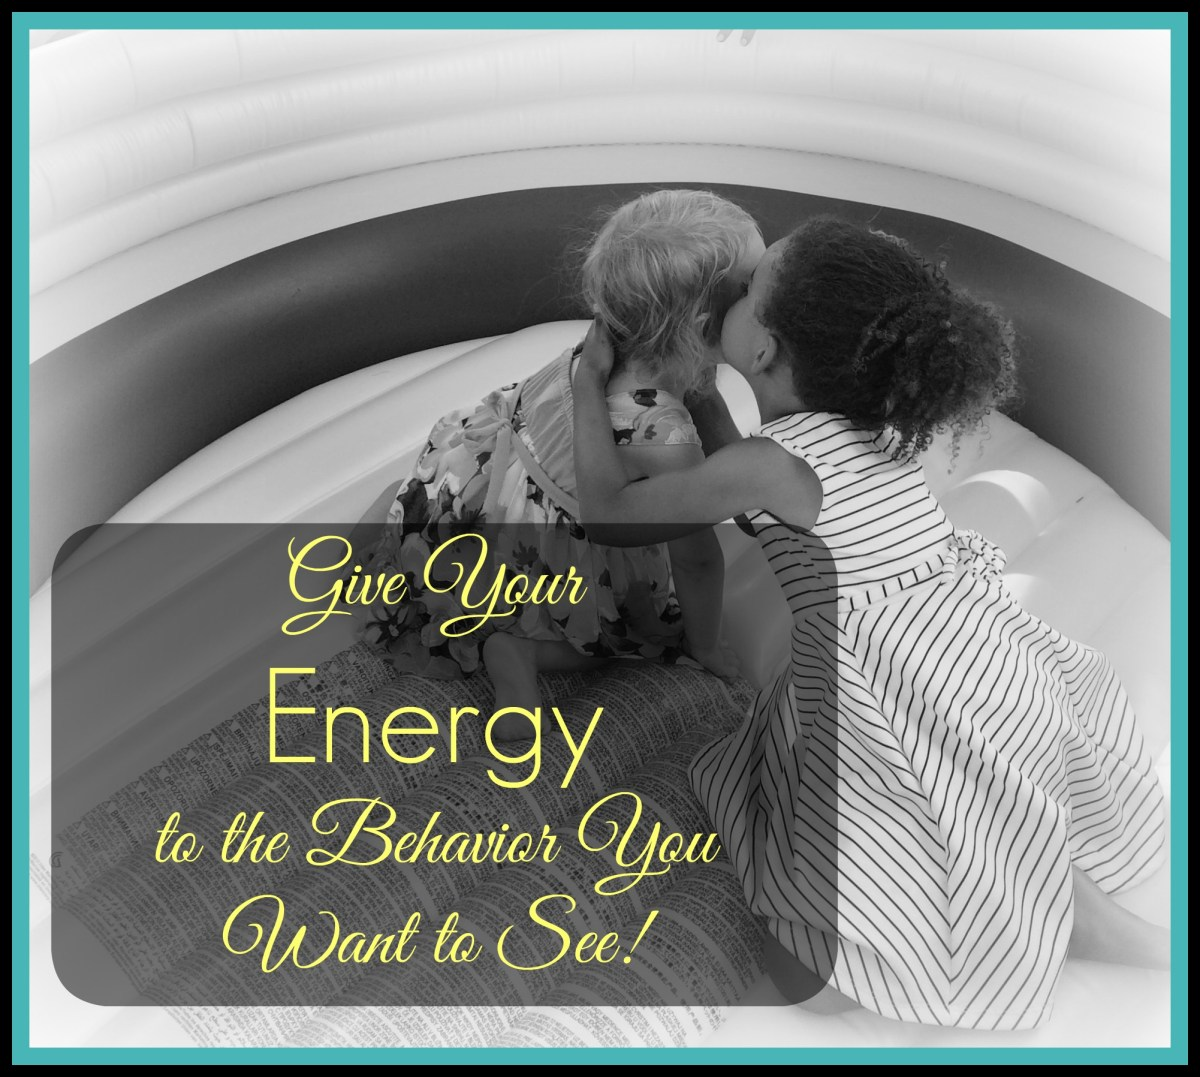 Give Your Energy to the Behavior You Want to See